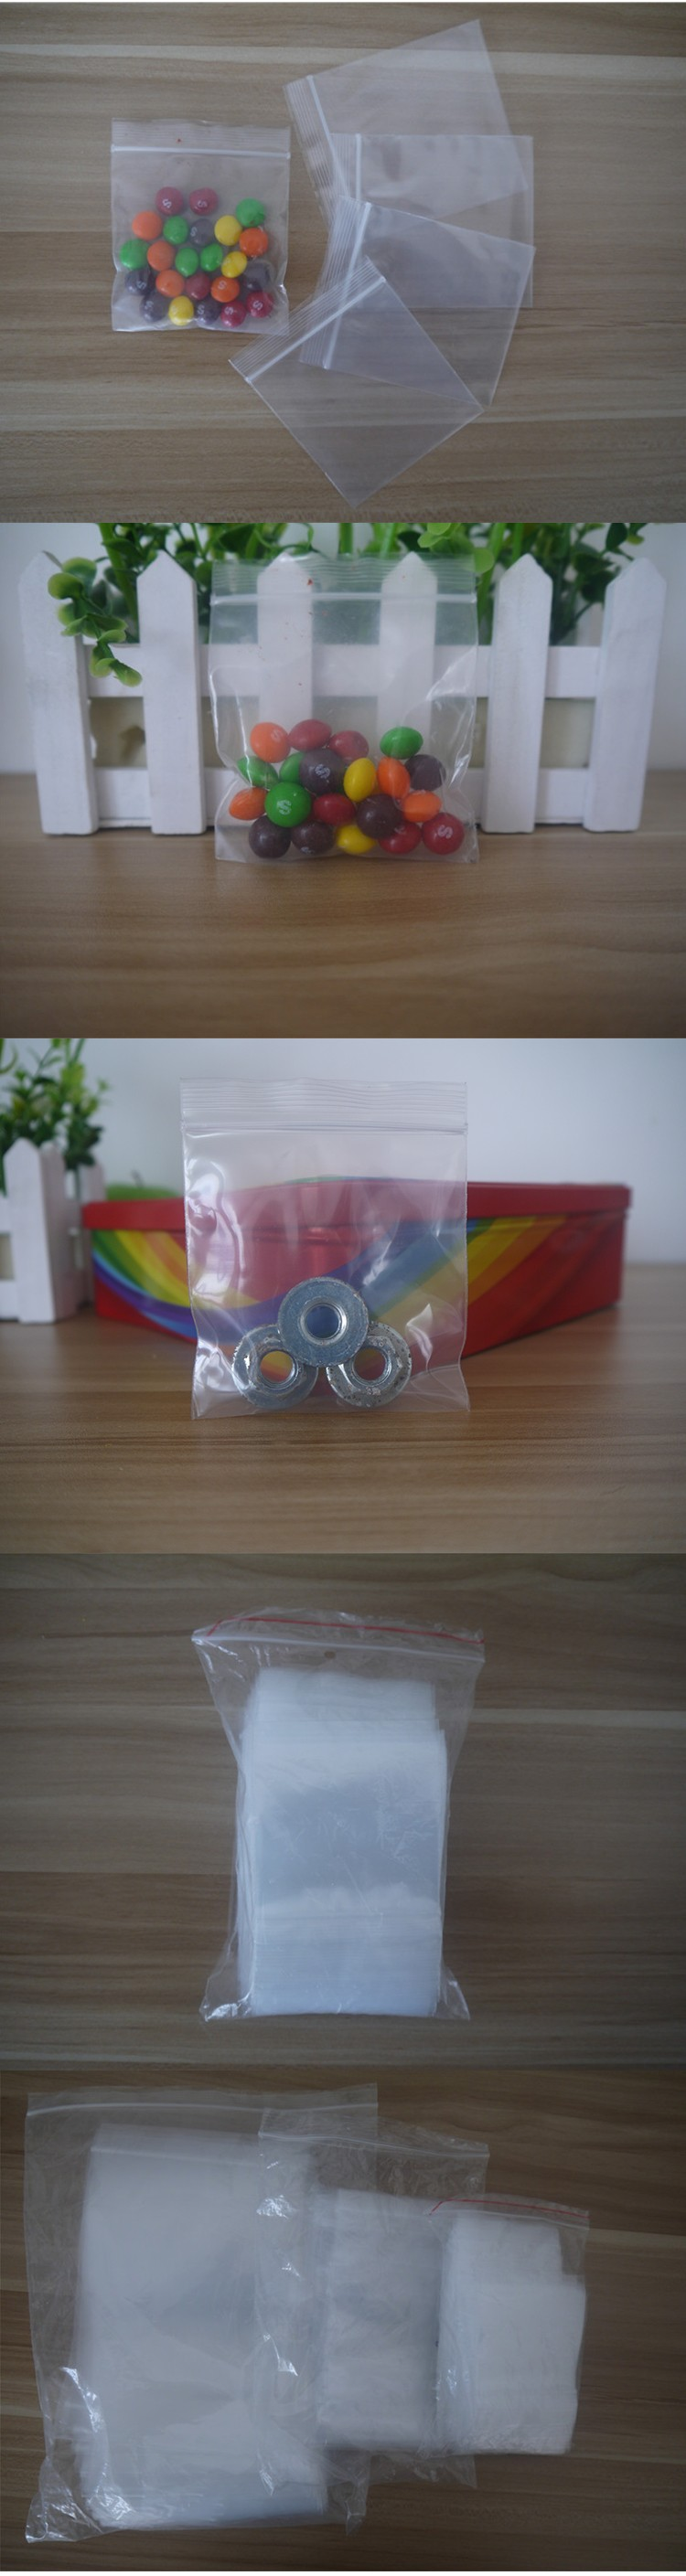 "Cheap price 2"" x 2"" Small Clear Poly Plastic Grip Seal Bags zip lock bag hot sales in UK market"